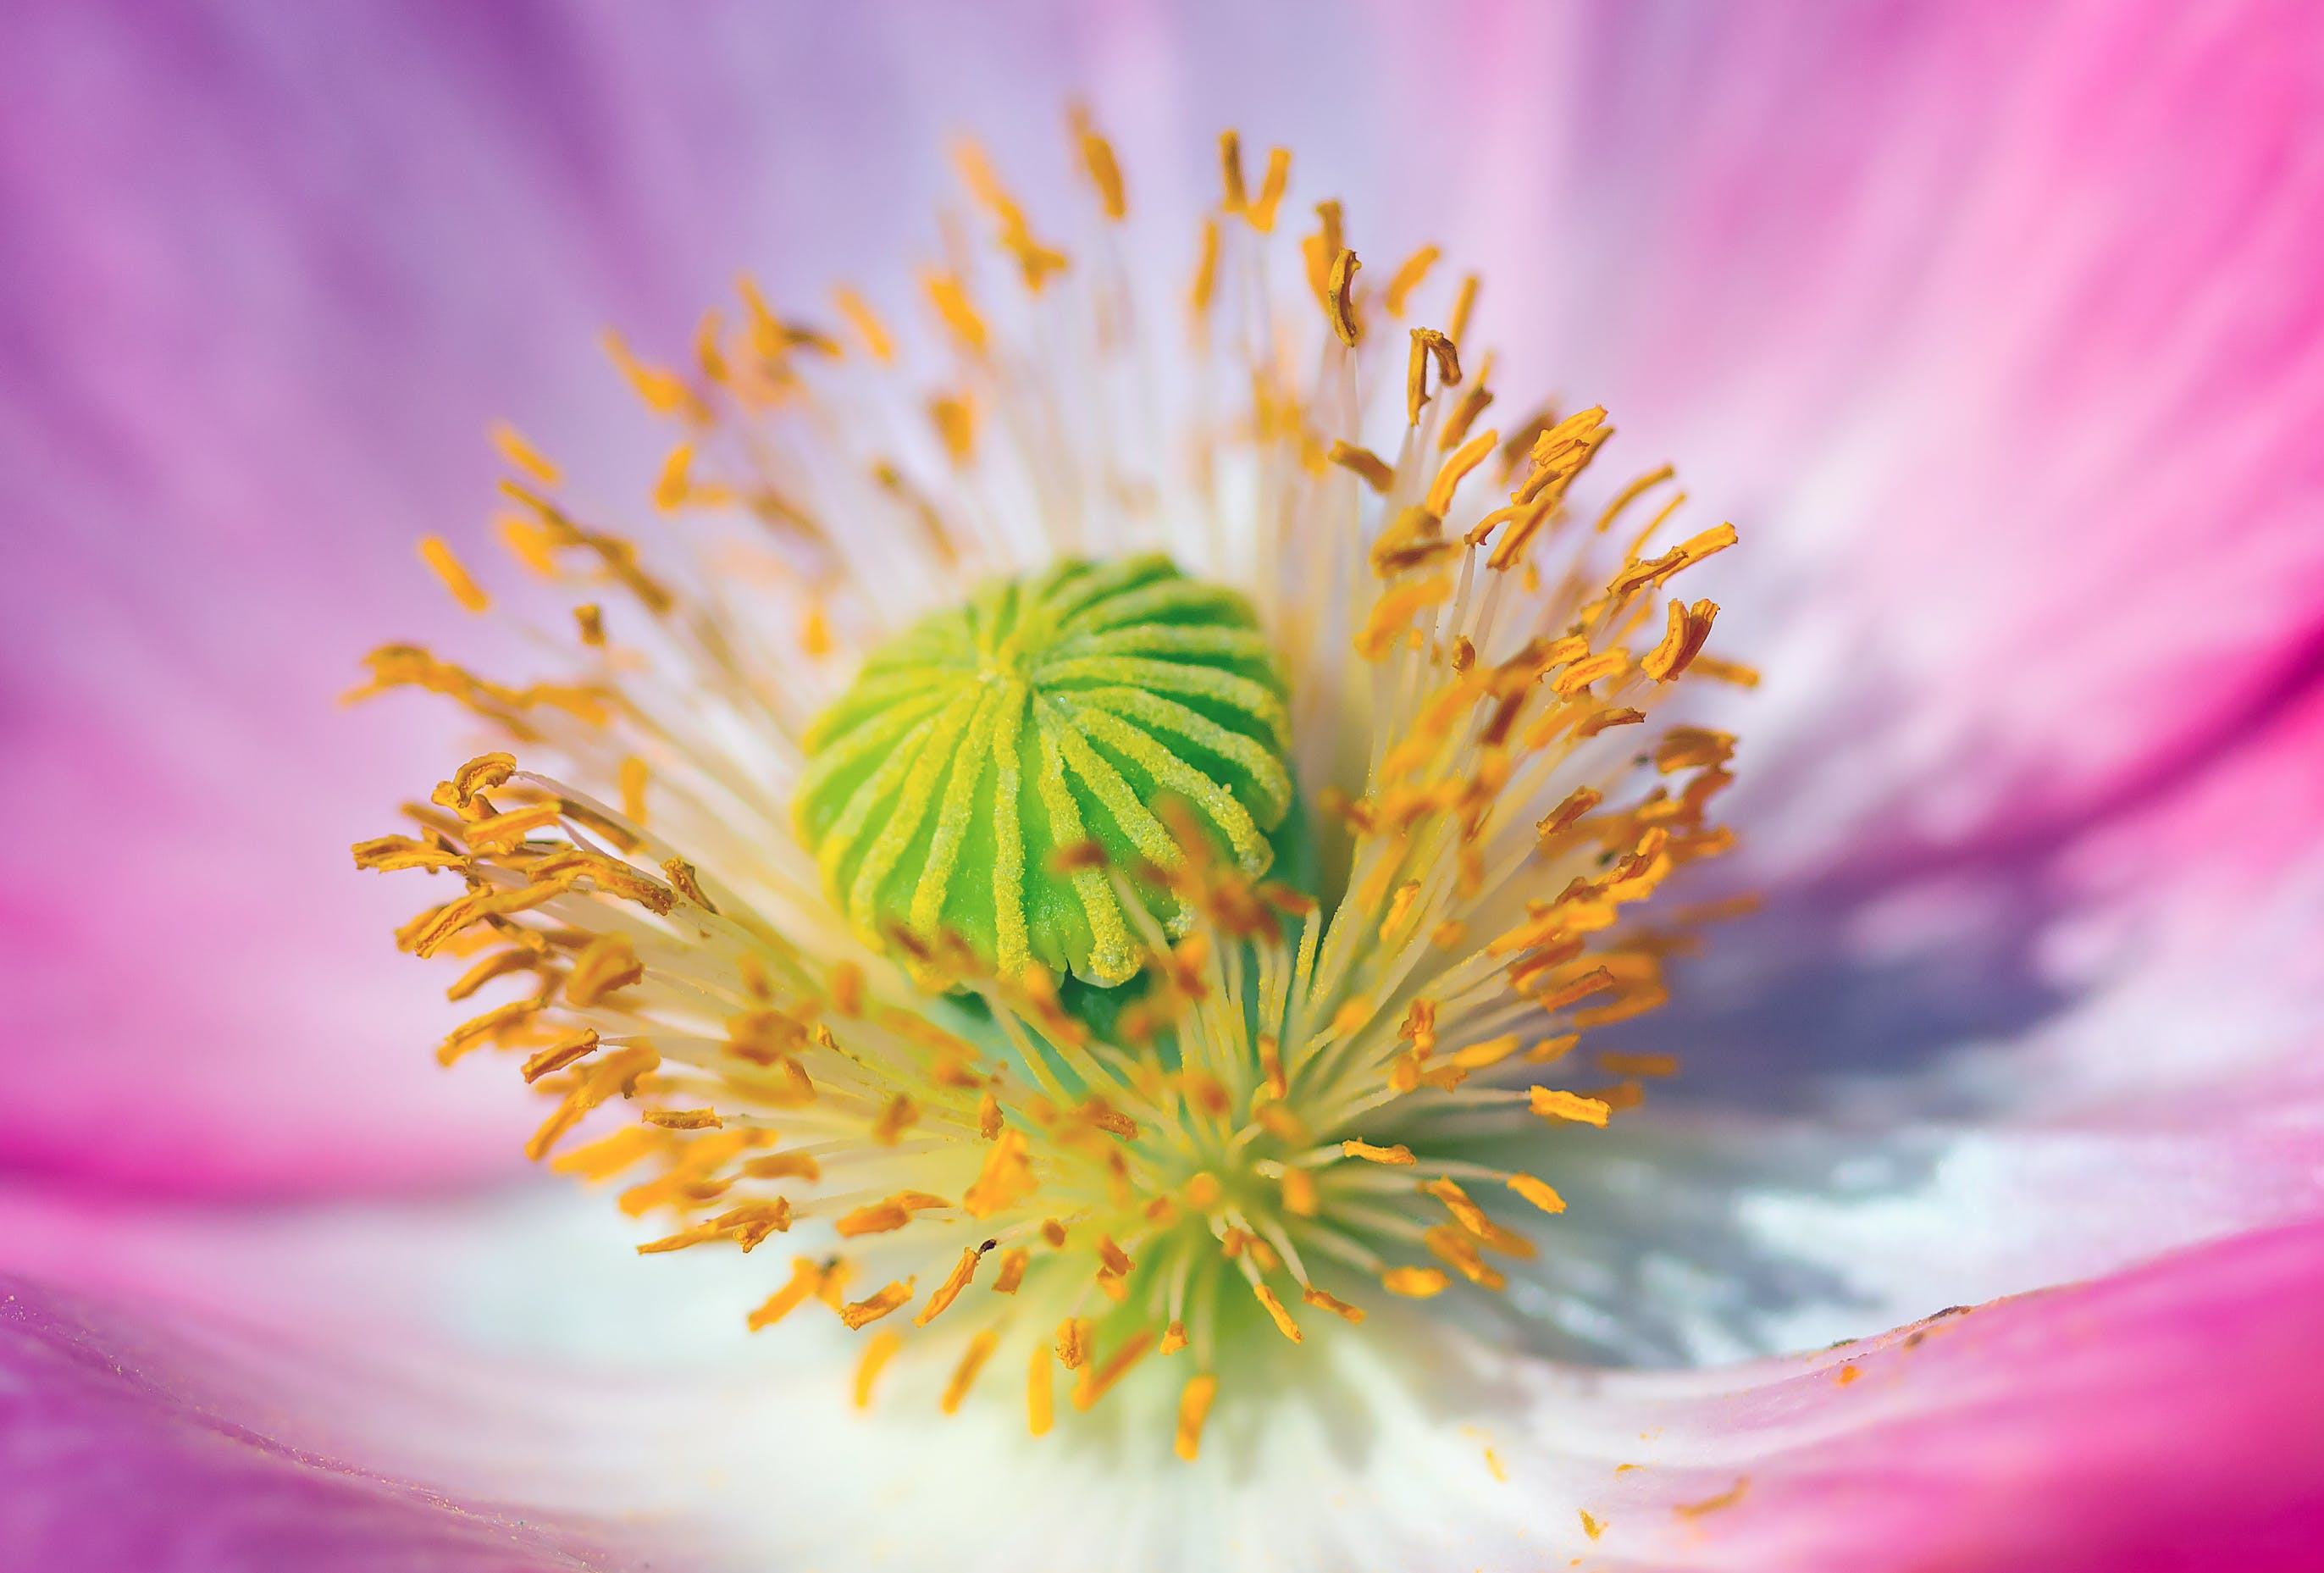 Close-Up Photography Of Flower Stigma